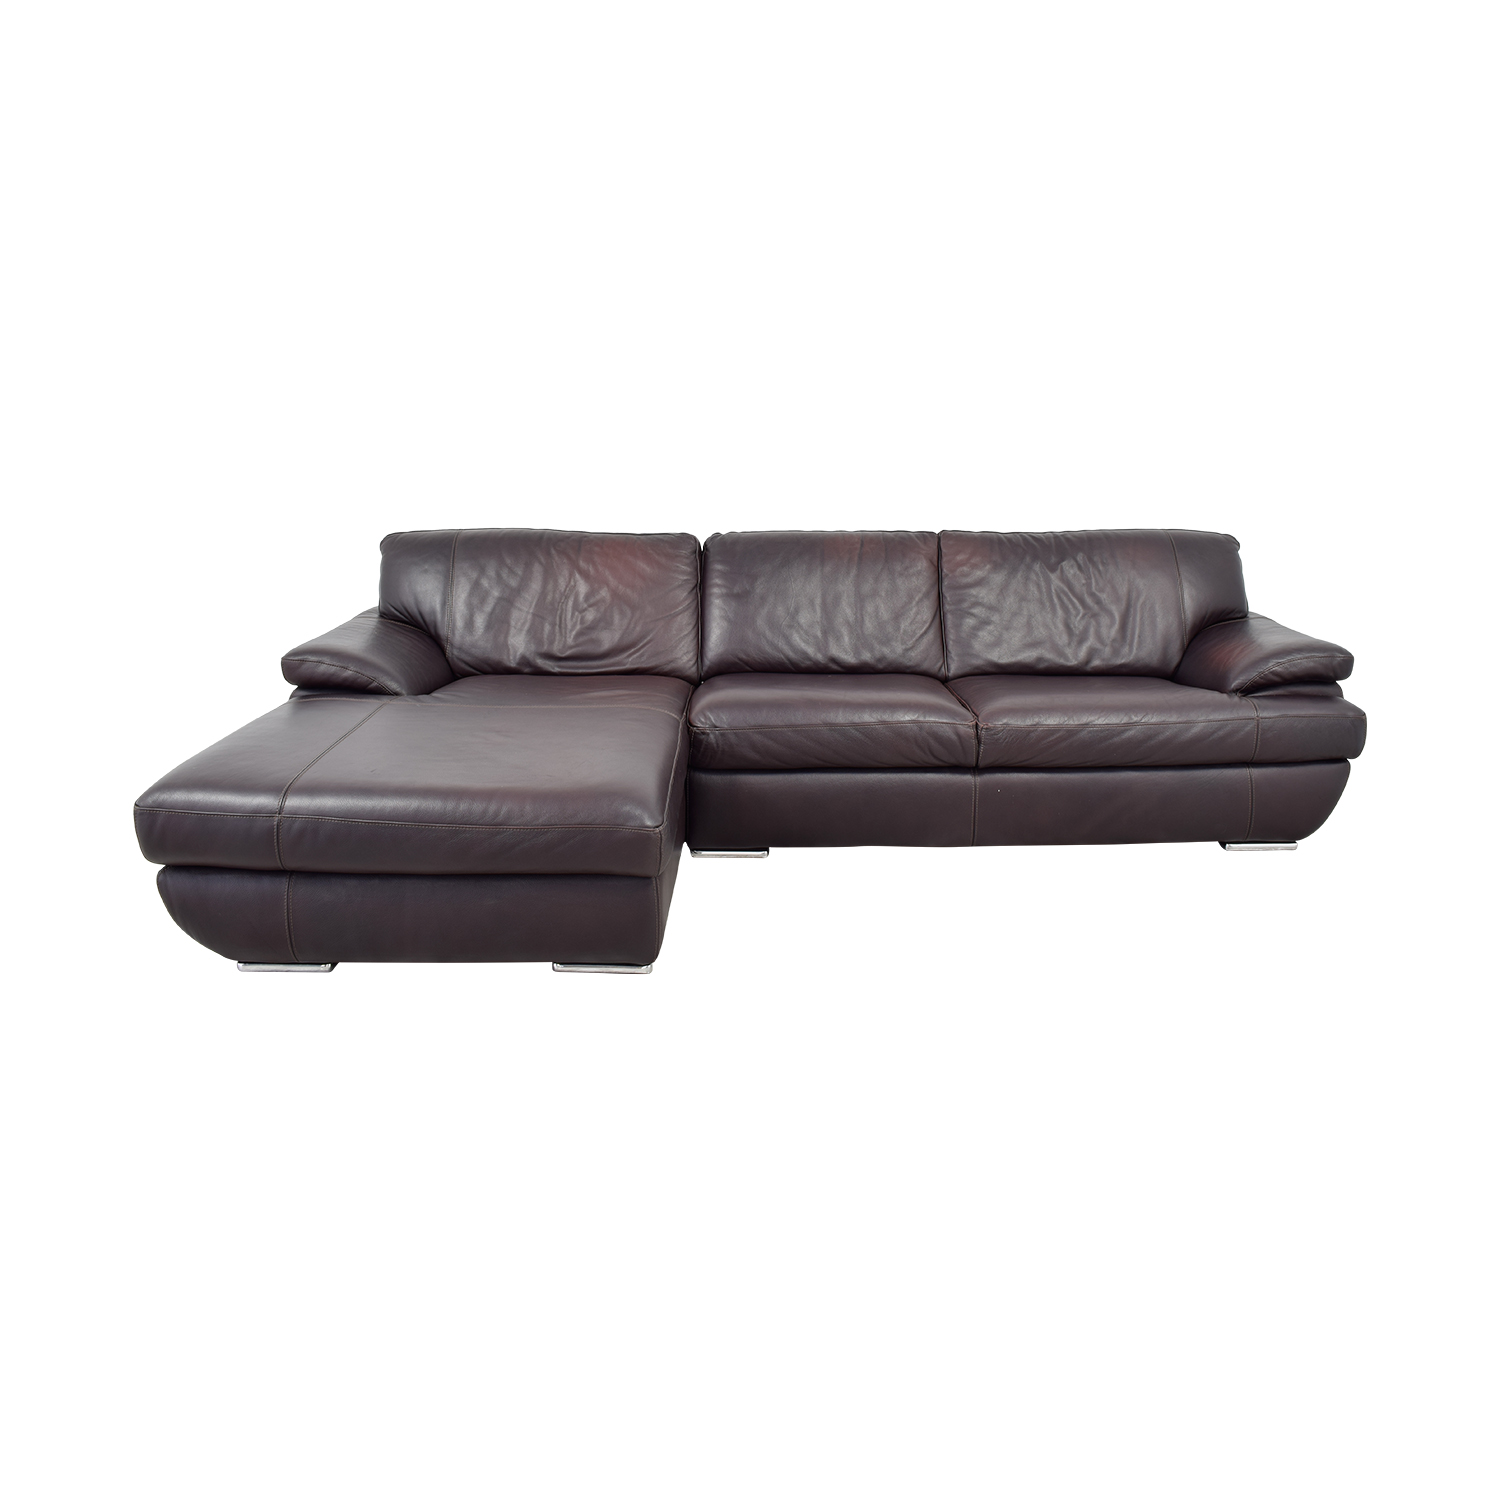 Chateau D'Ax Chateau D'Ax Brown Leather Left Chaise Sectional Sectionals